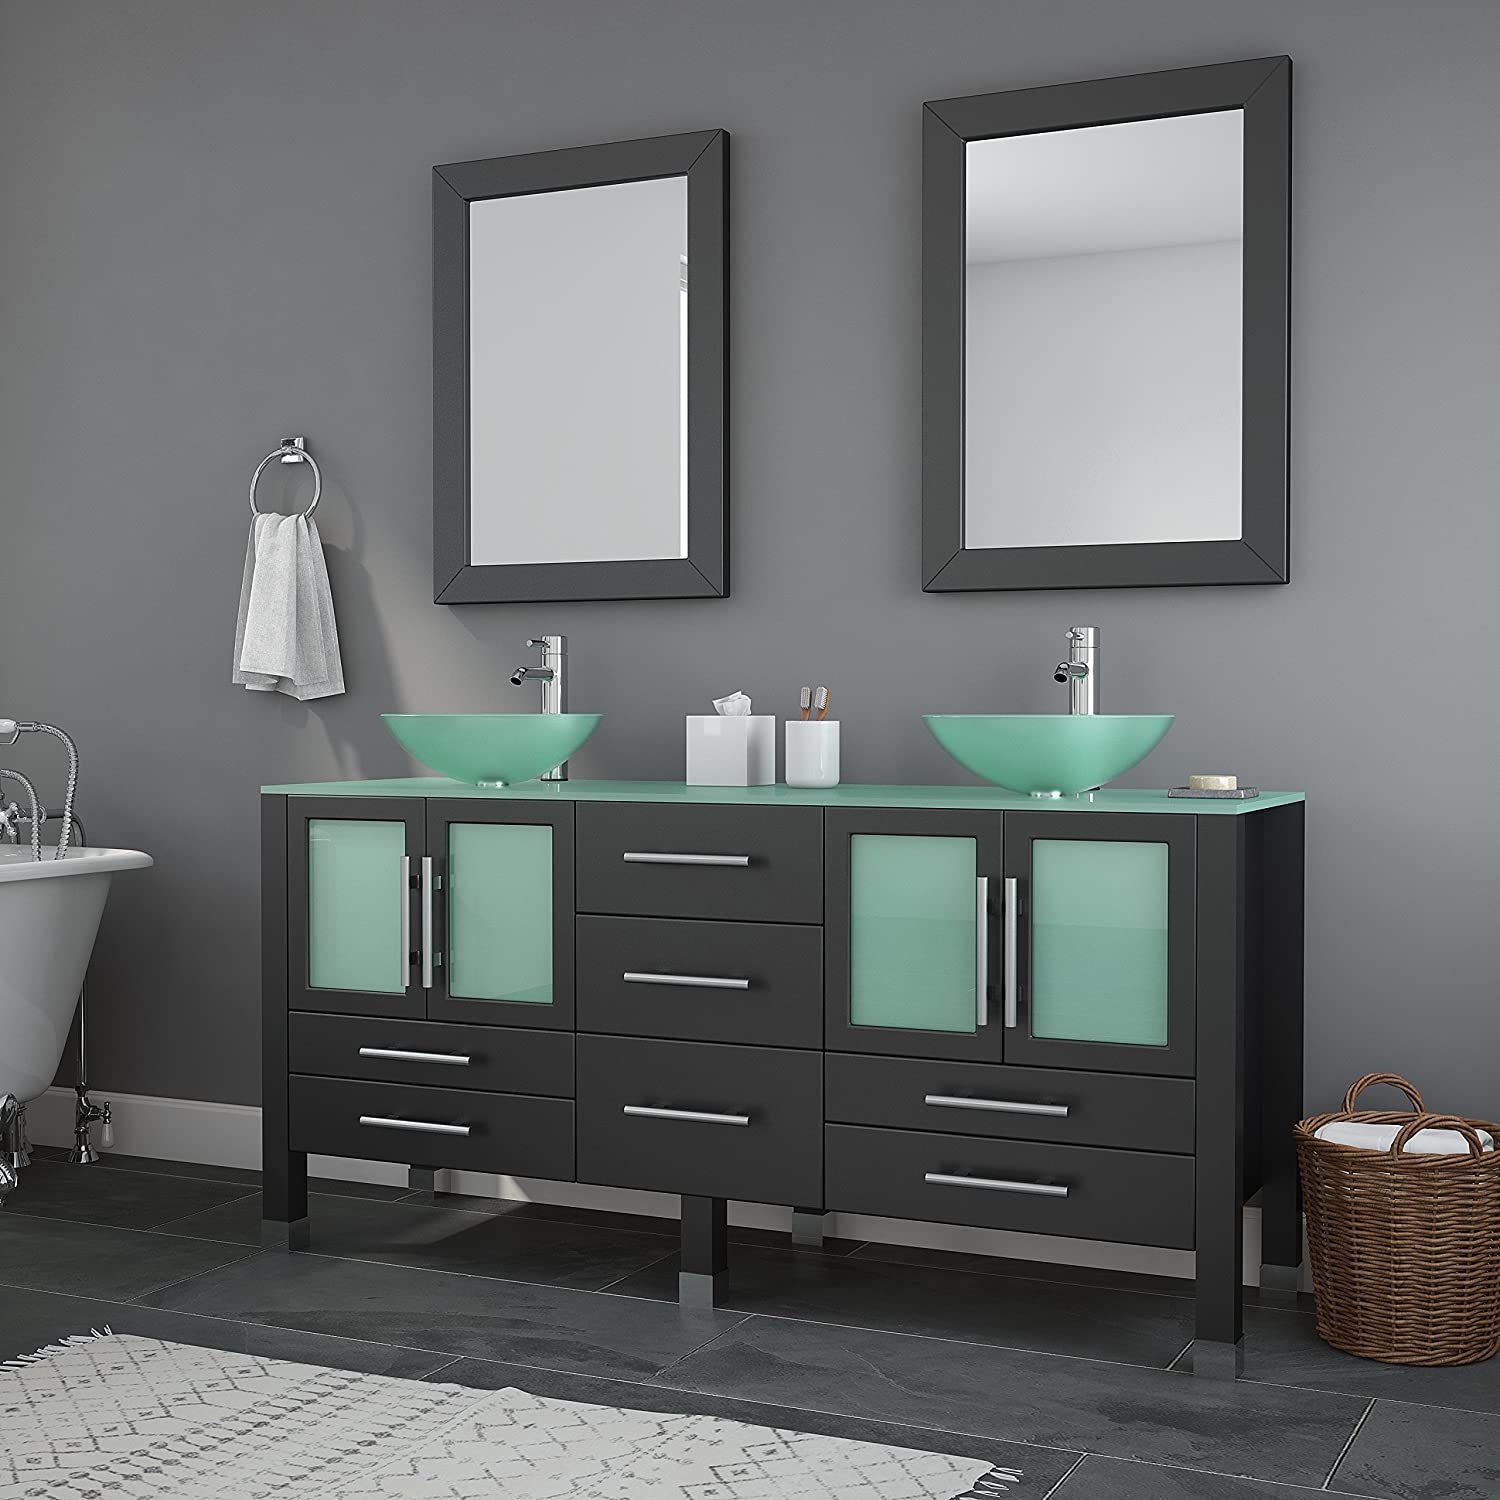 63 Inch Espresso Wood Glass Double Sink Bathroom Vanity Set- Oregon Brushed Nickel Faucets